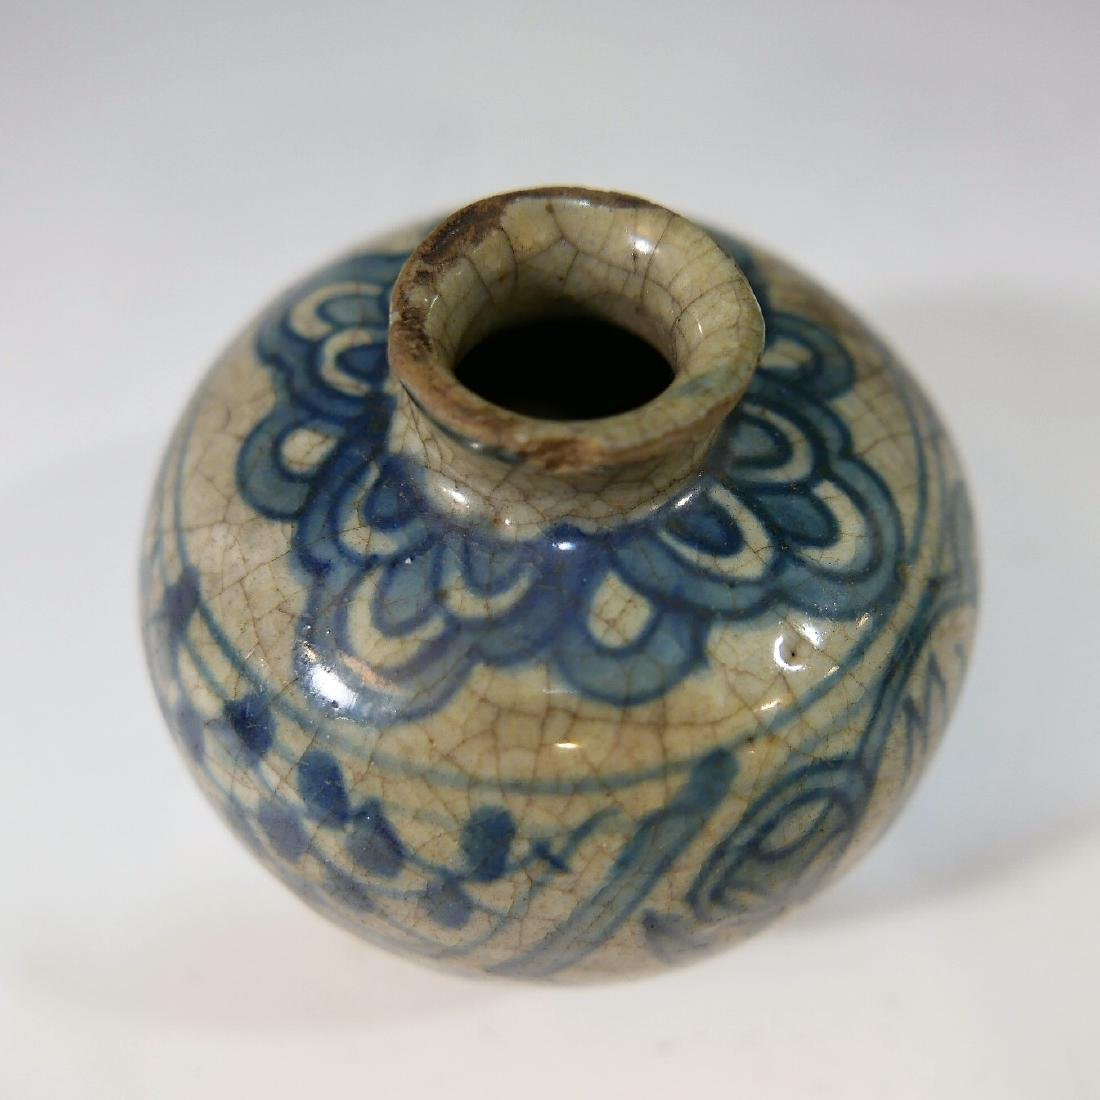 CHINESE ANTIQUE BLUE AND WHITE JAR - MING DYNASTY - 4